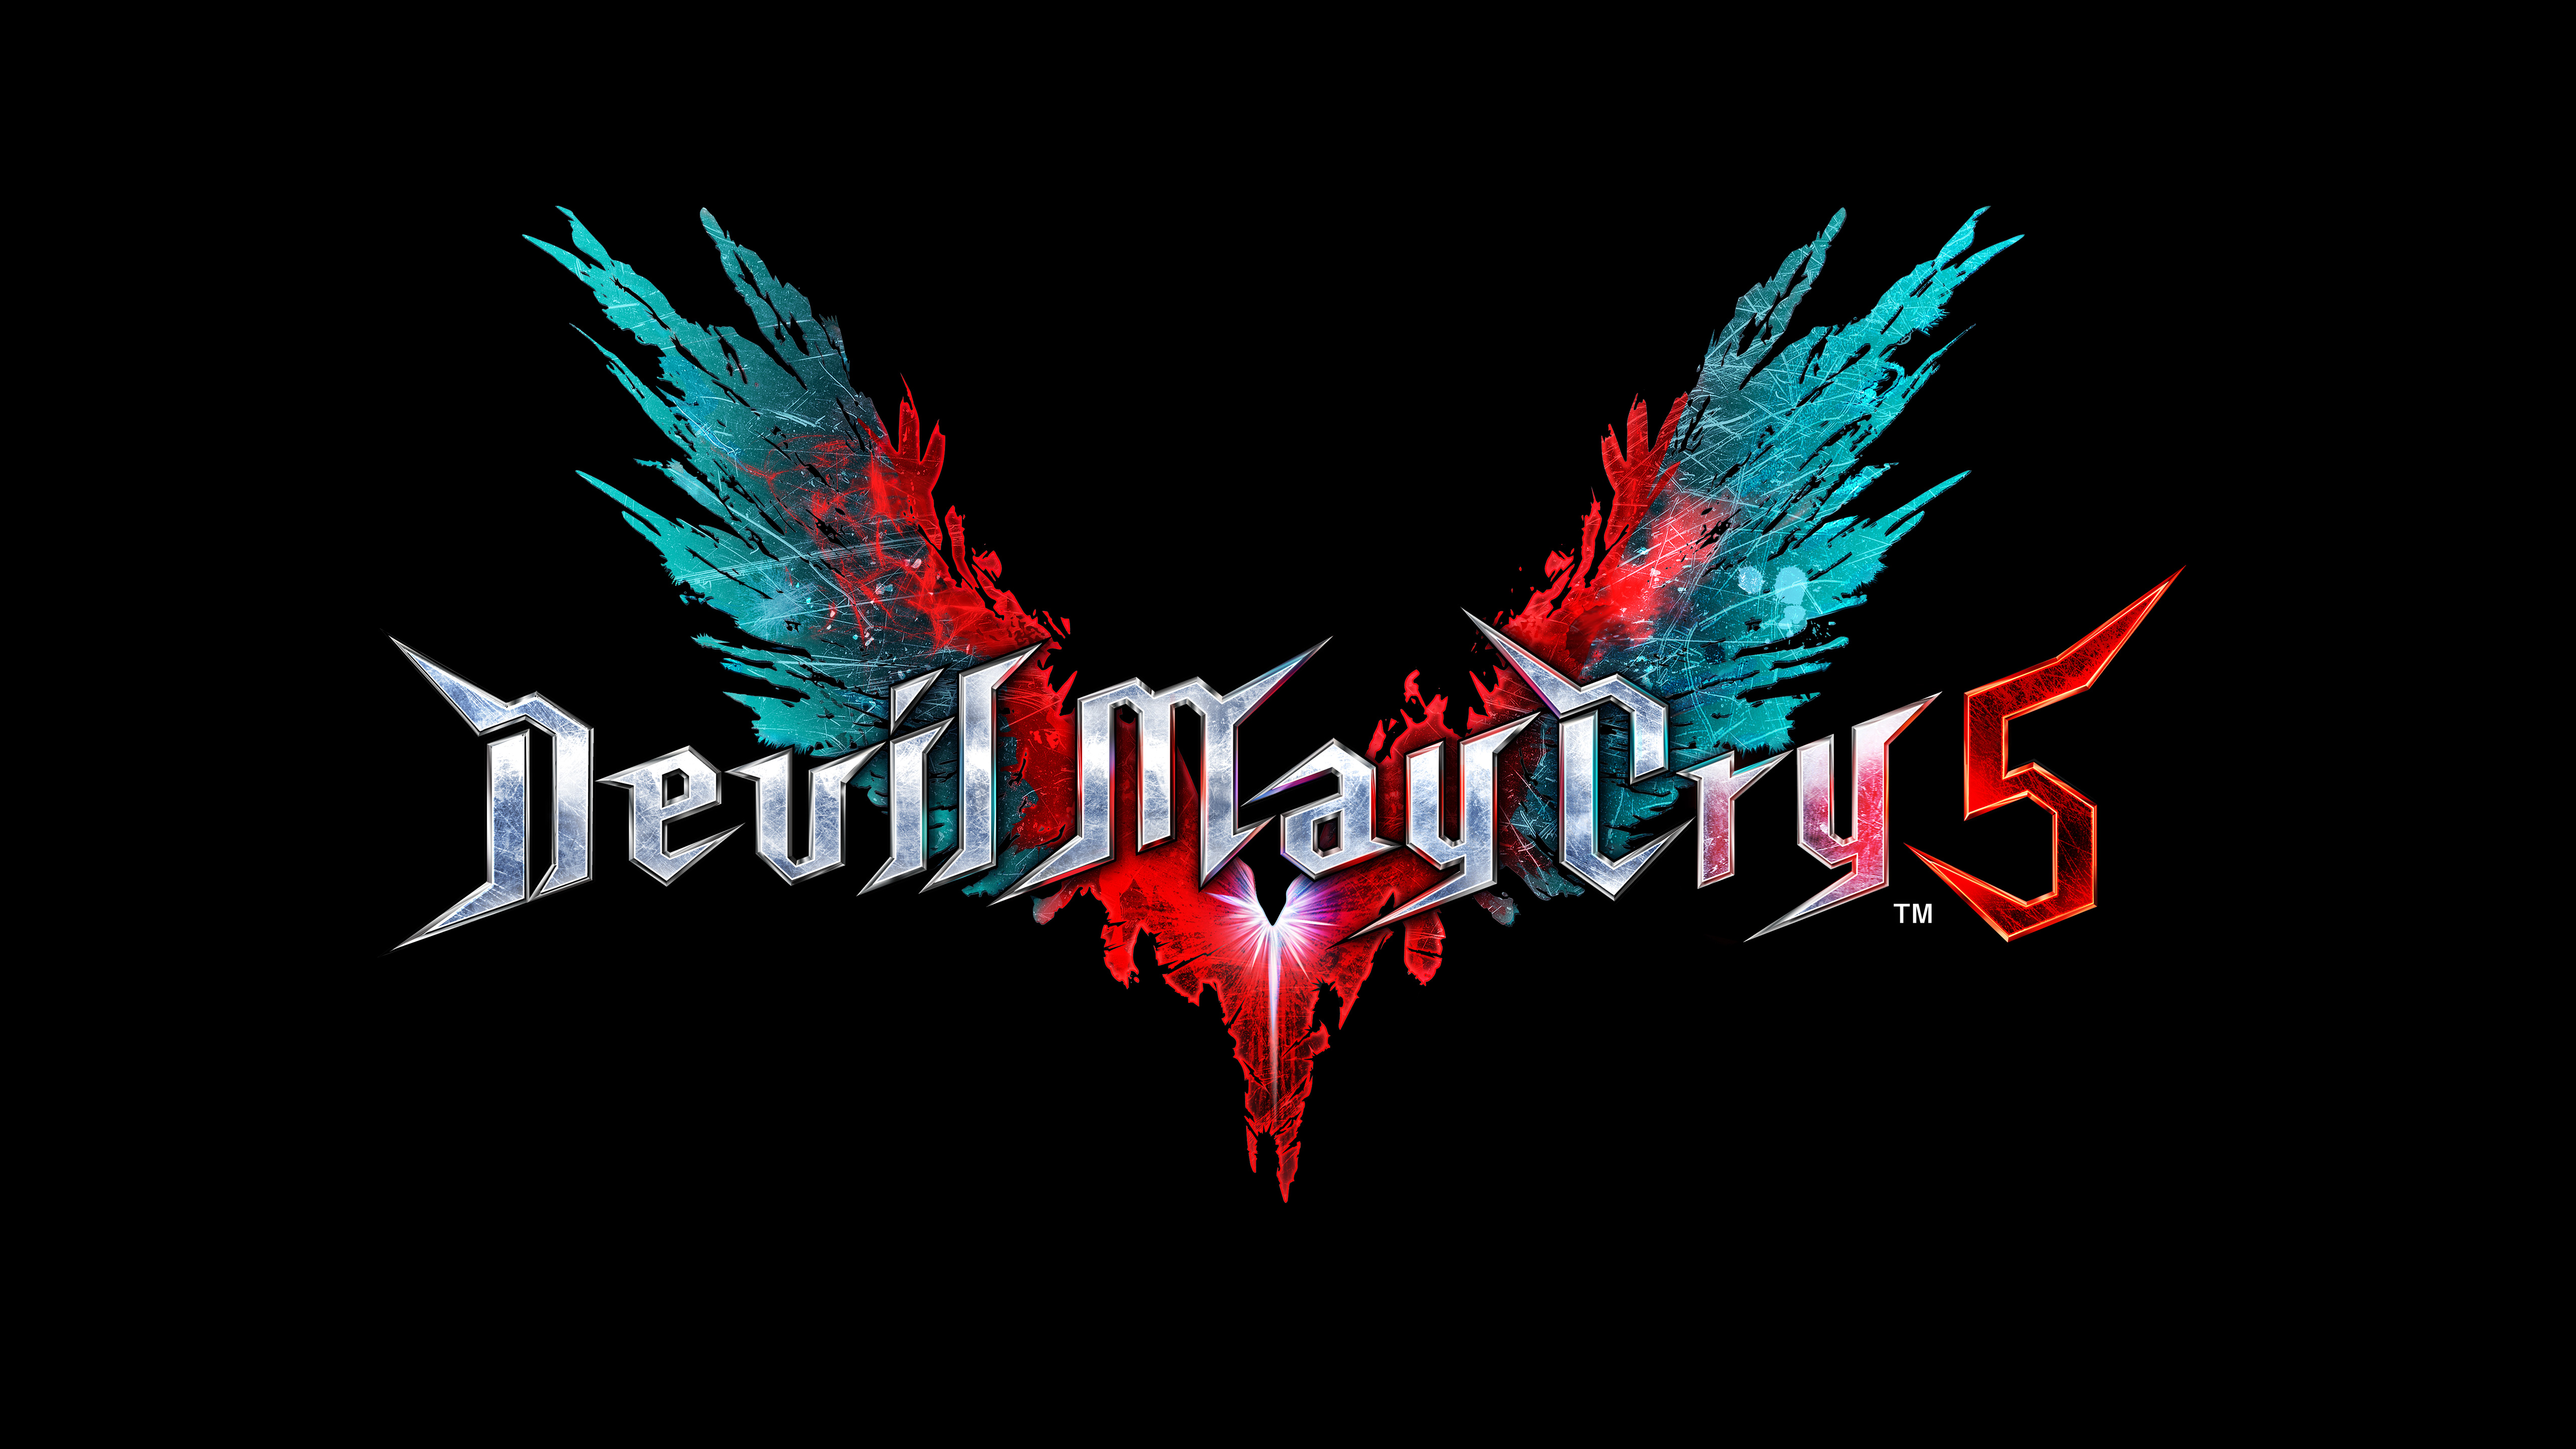 Devil May Cry 5 Logo 5k, HD Games, 4k Wallpapers, Images